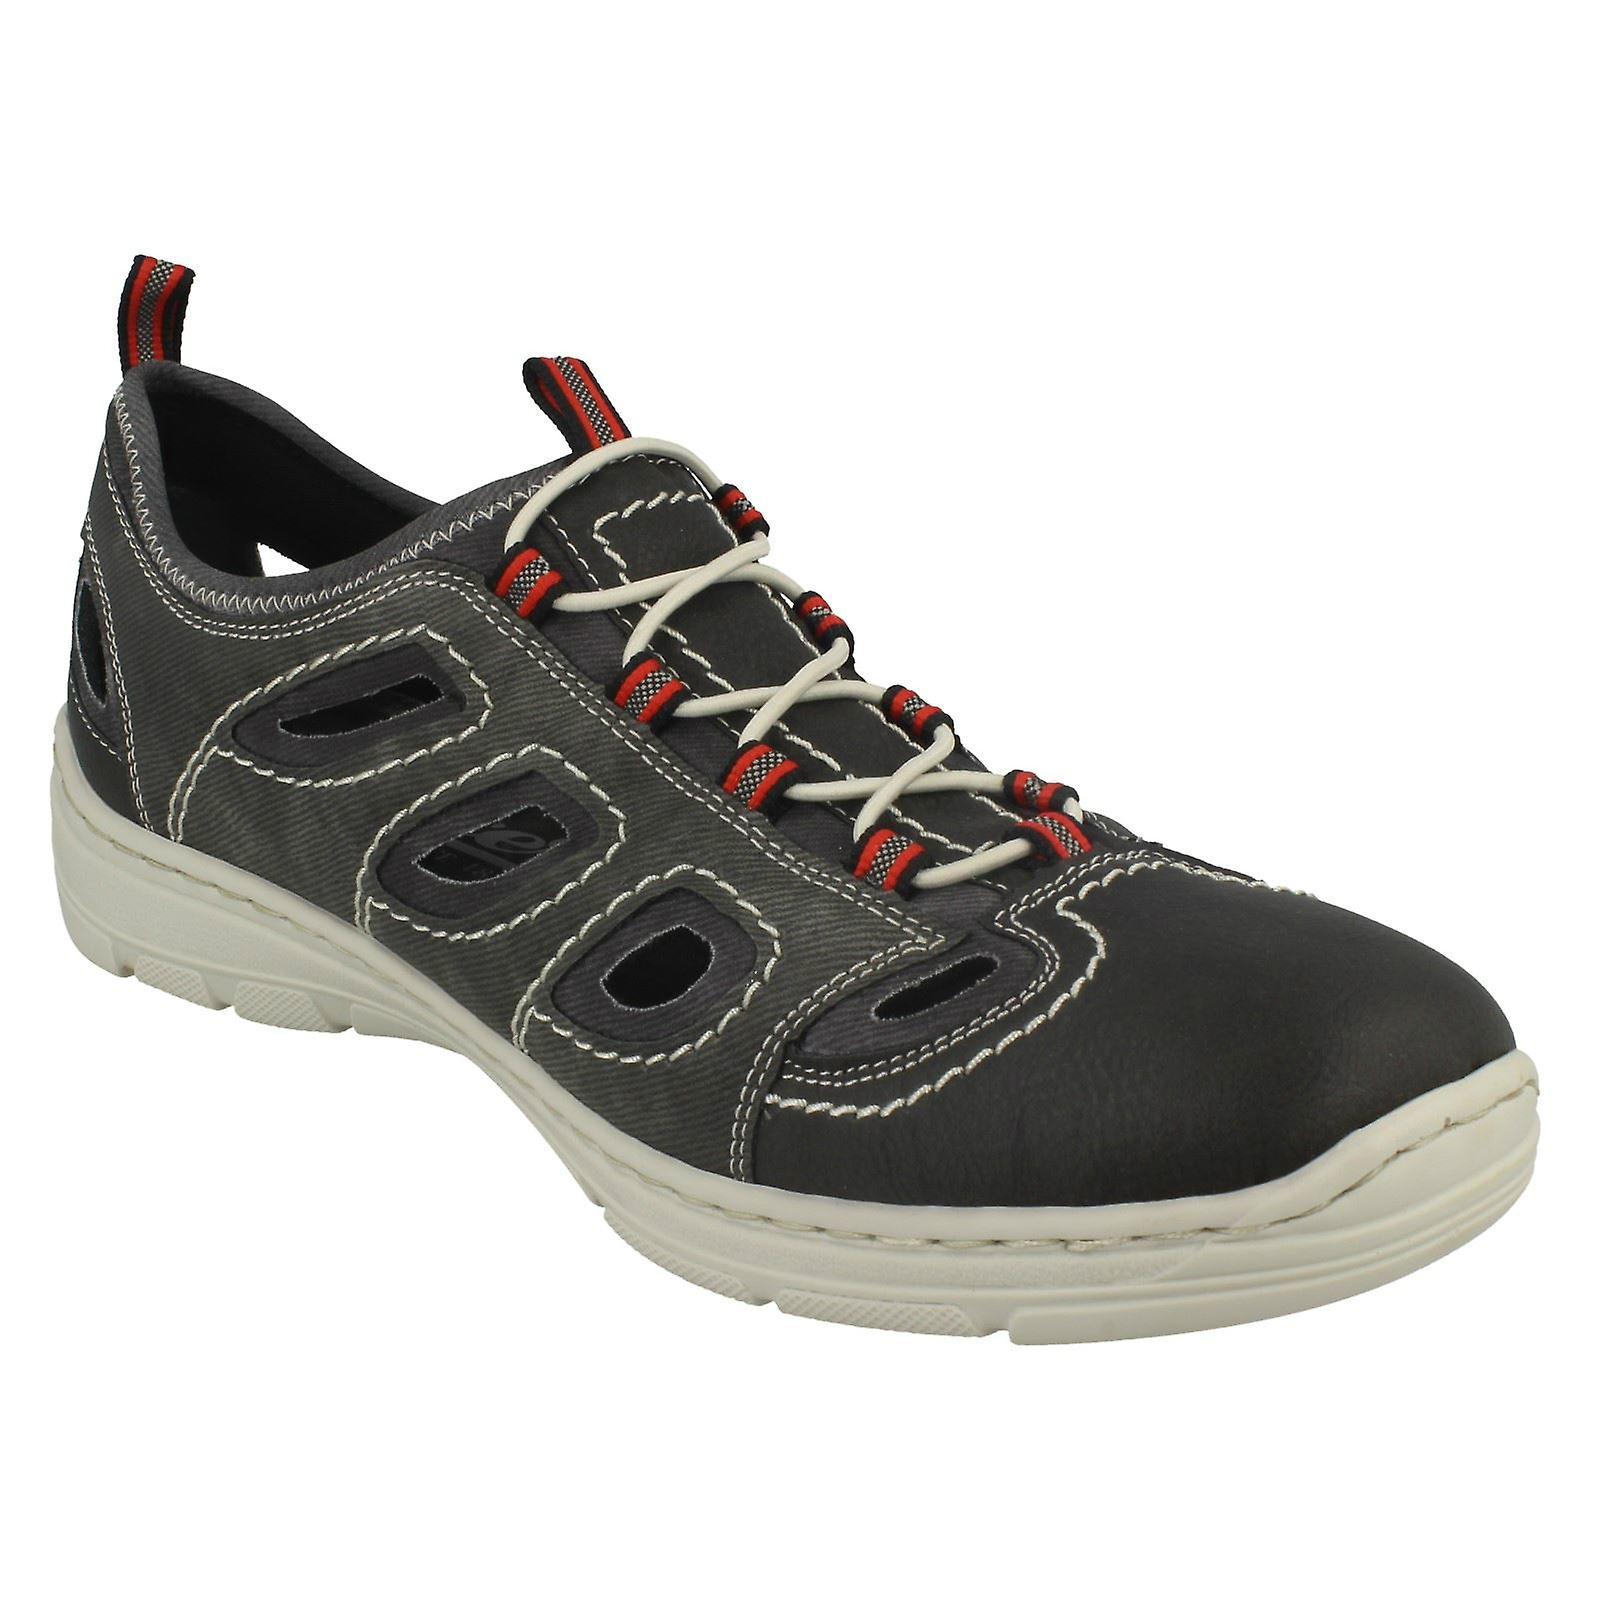 15285 Casual Out Shoes Detail Rieker Cut Mens With ARw47PUx